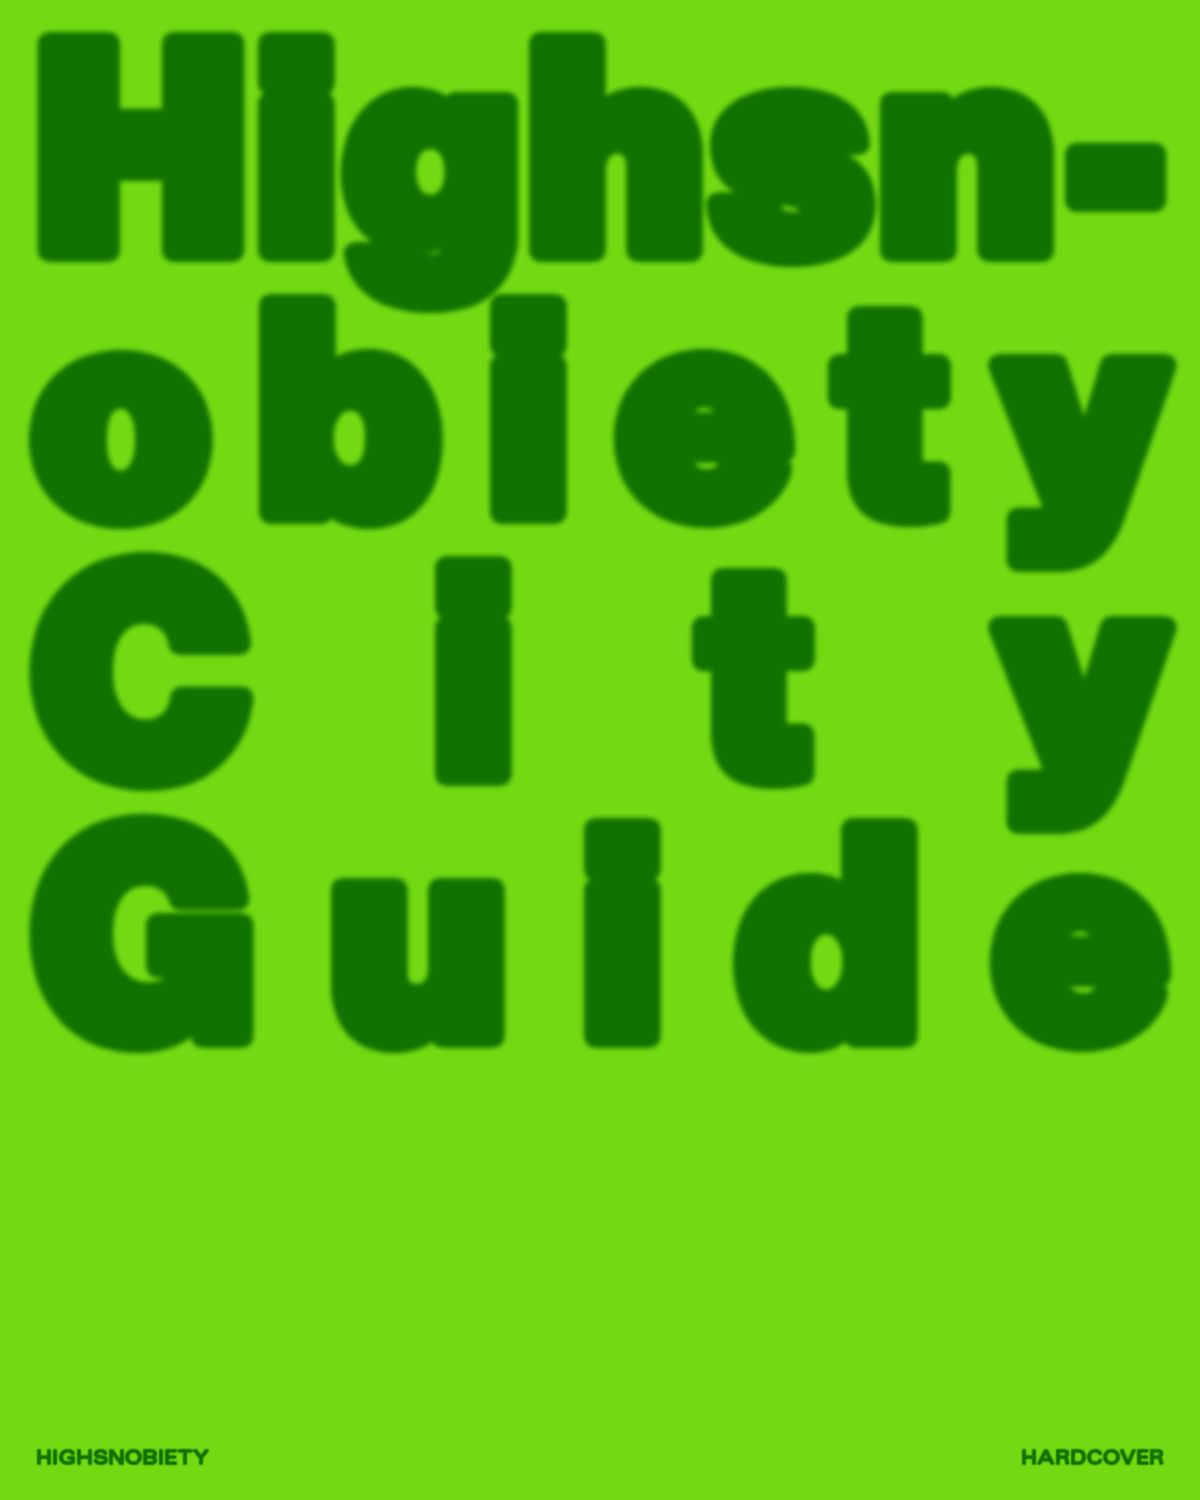 The Ultimate Highsnobiety City Guide